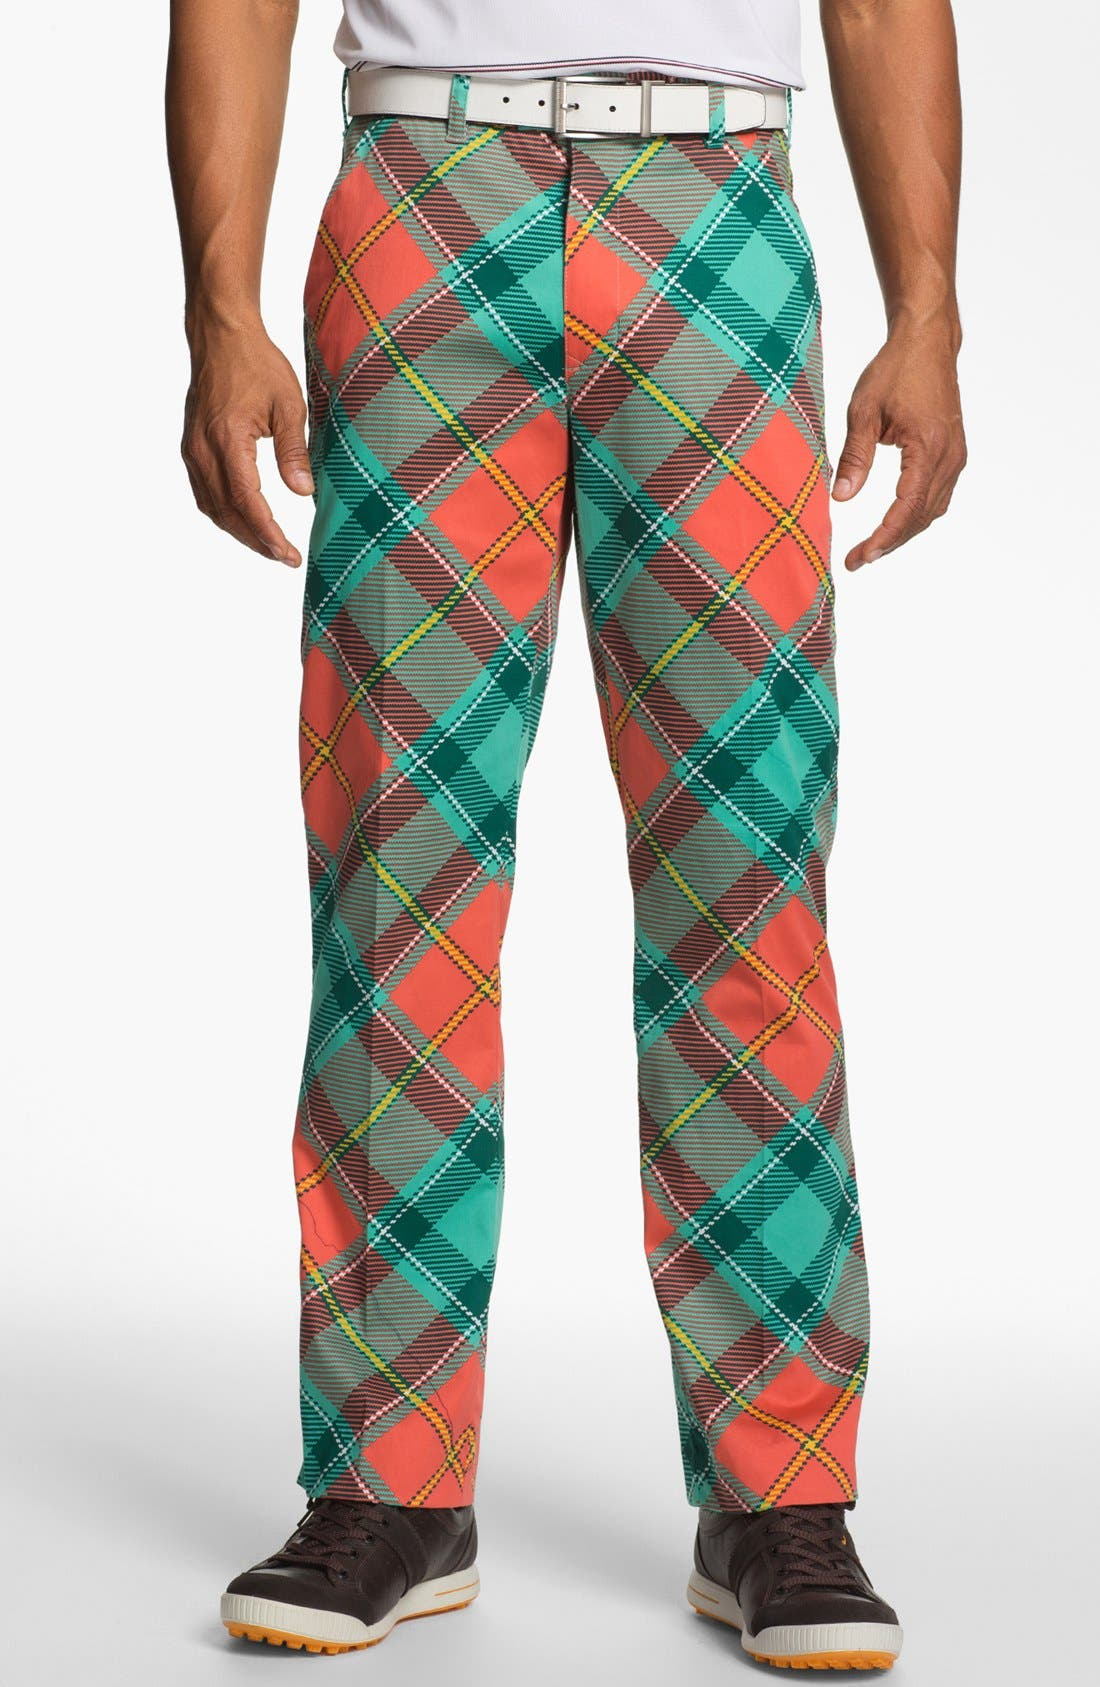 Main Image - Loudmouth Golf 'Just Peachy' Golf Pants